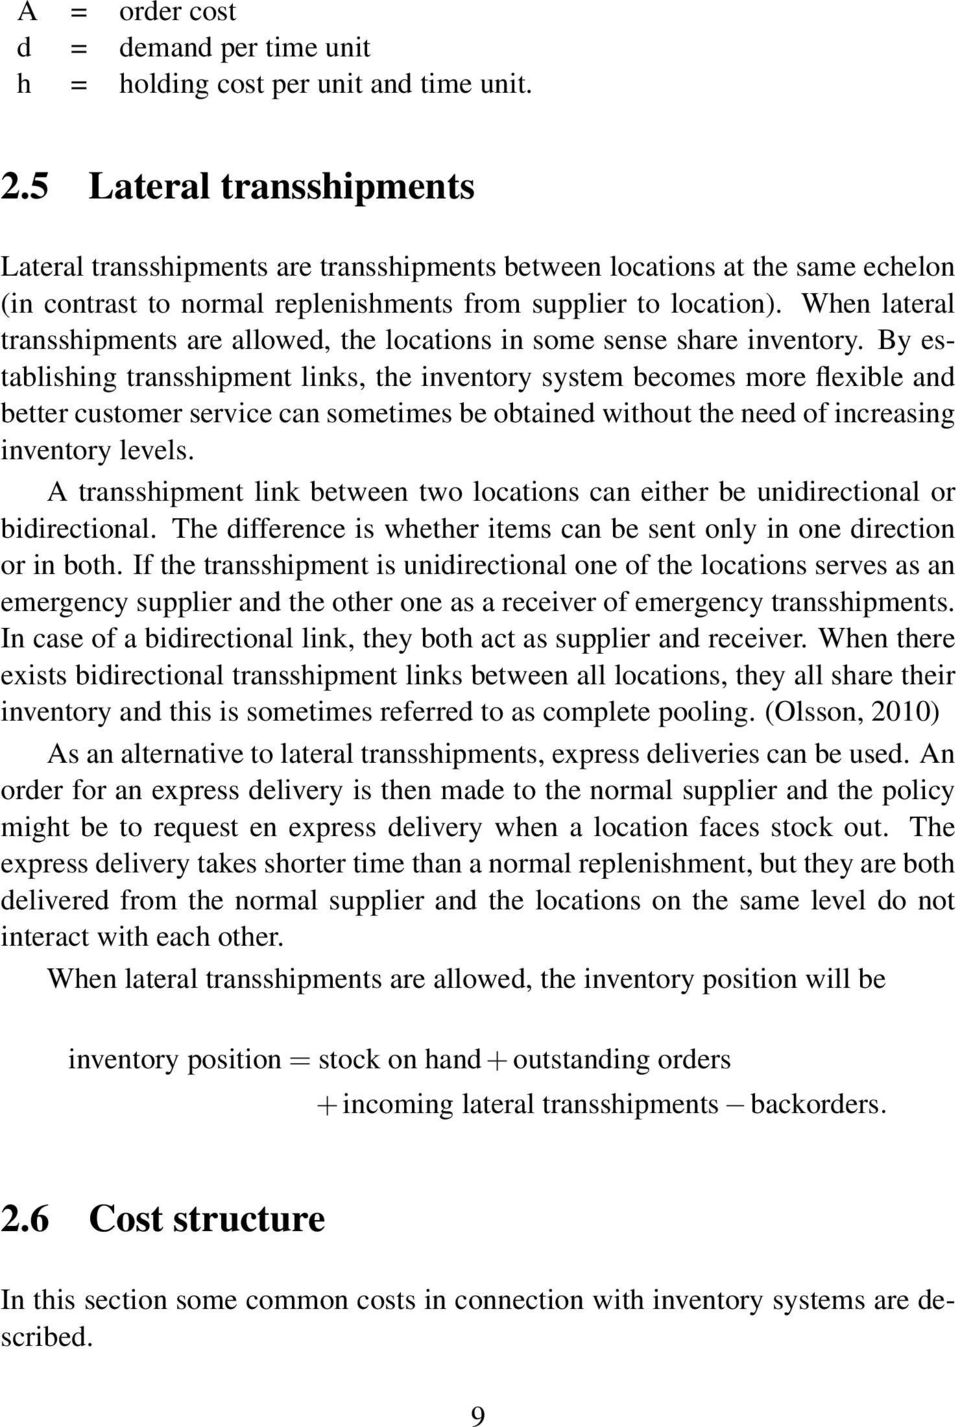 When lateral transshipments are allowed, the locations in some sense share inventory.